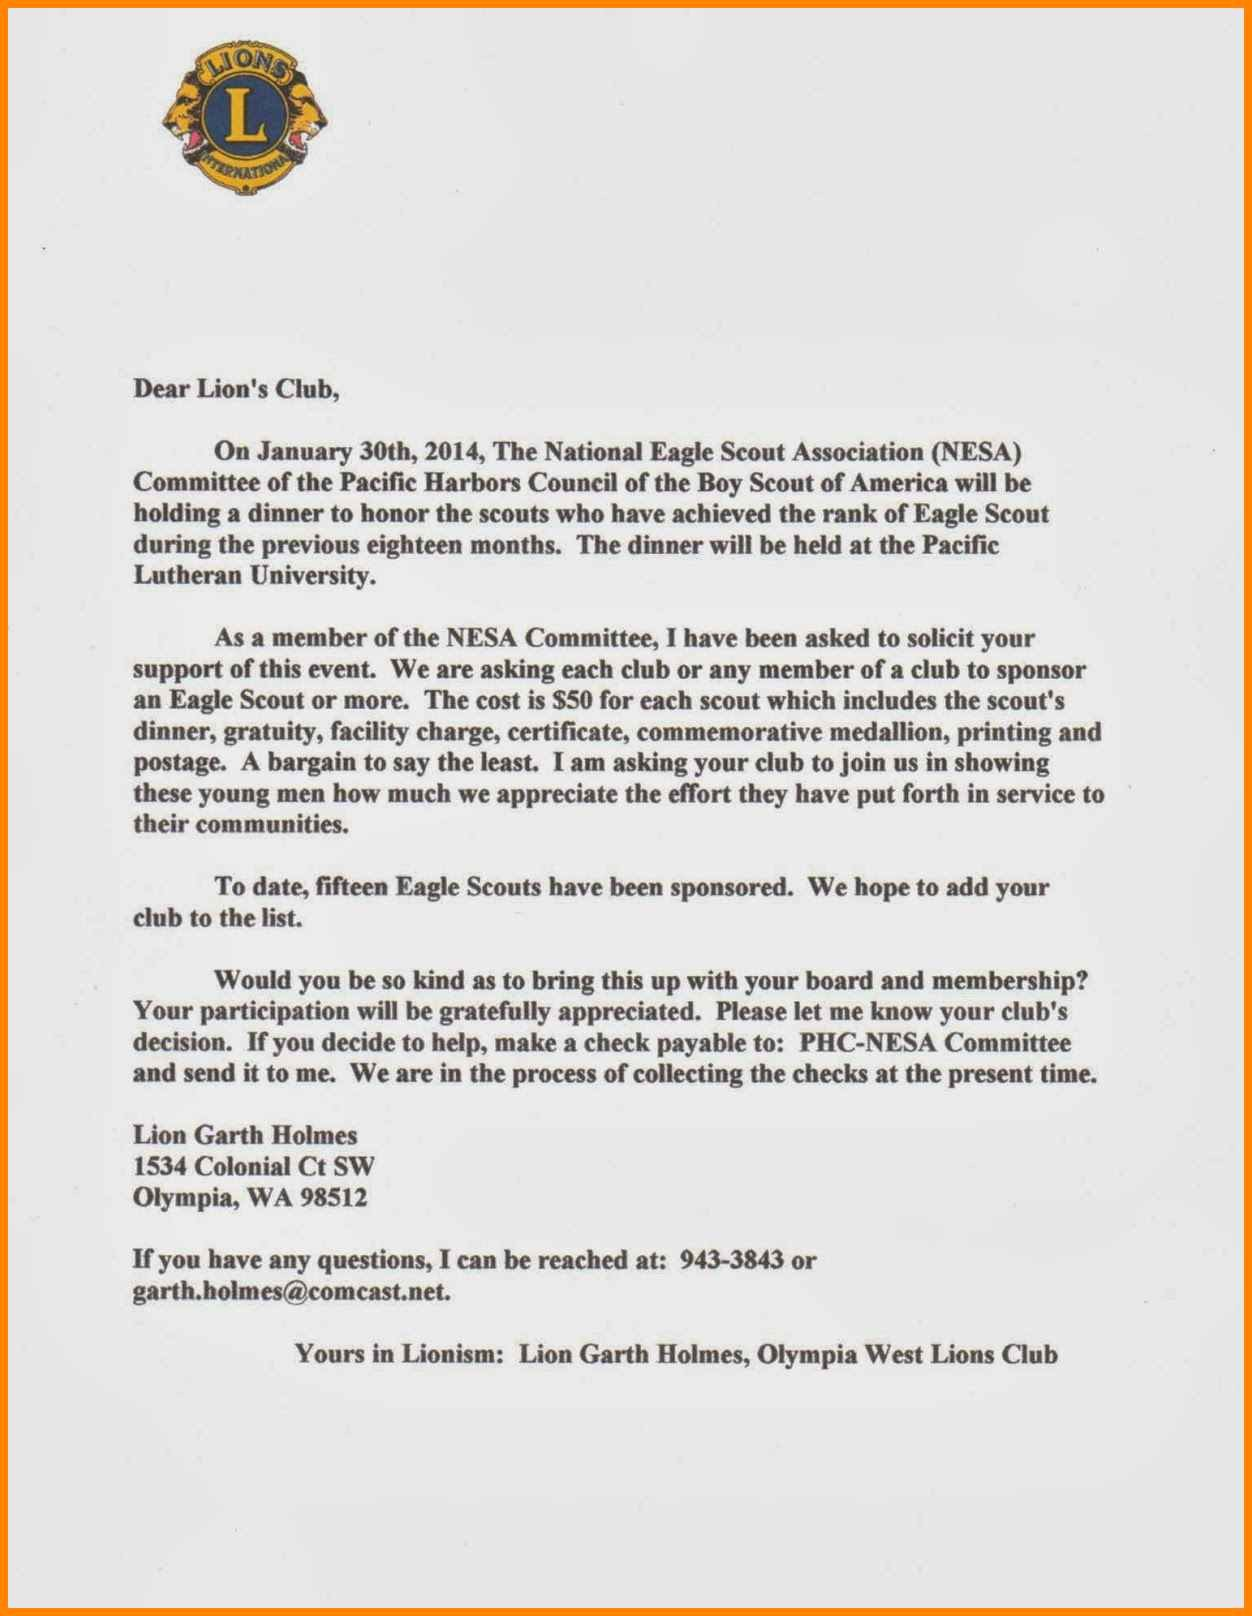 Eagle Scout Ambition Statement Example Elegant 14 Eagle Scout Life Statement